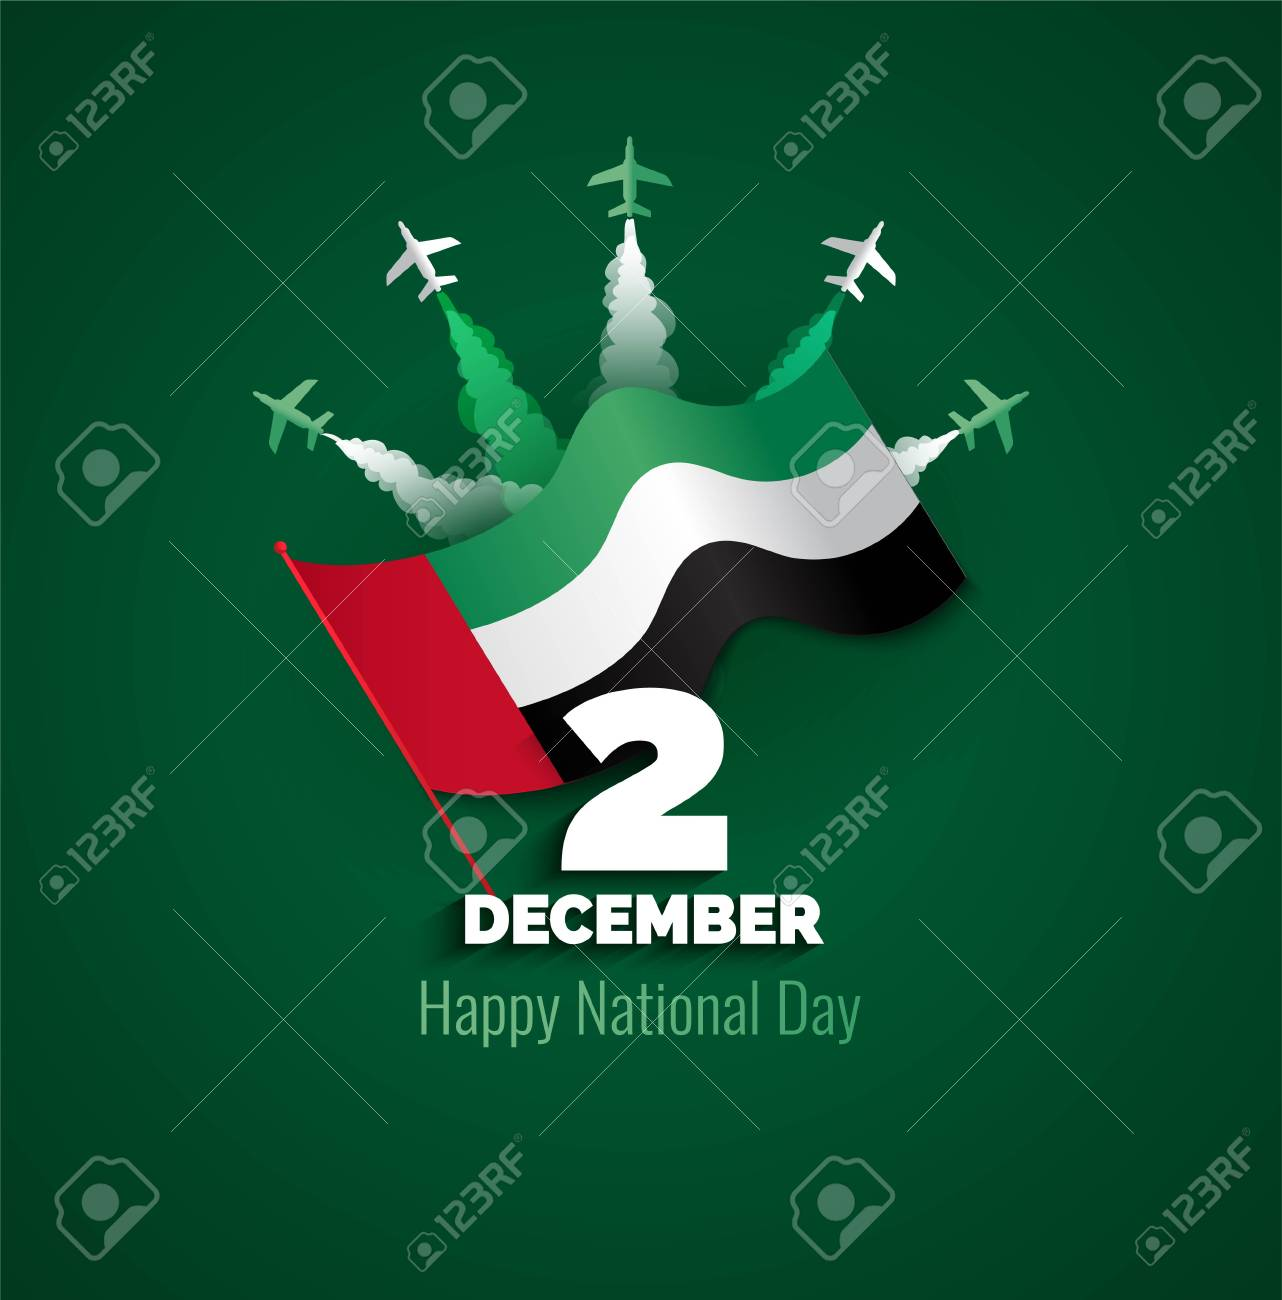 Uae Independence Day Greeting Card Design Royalty Free Cliparts